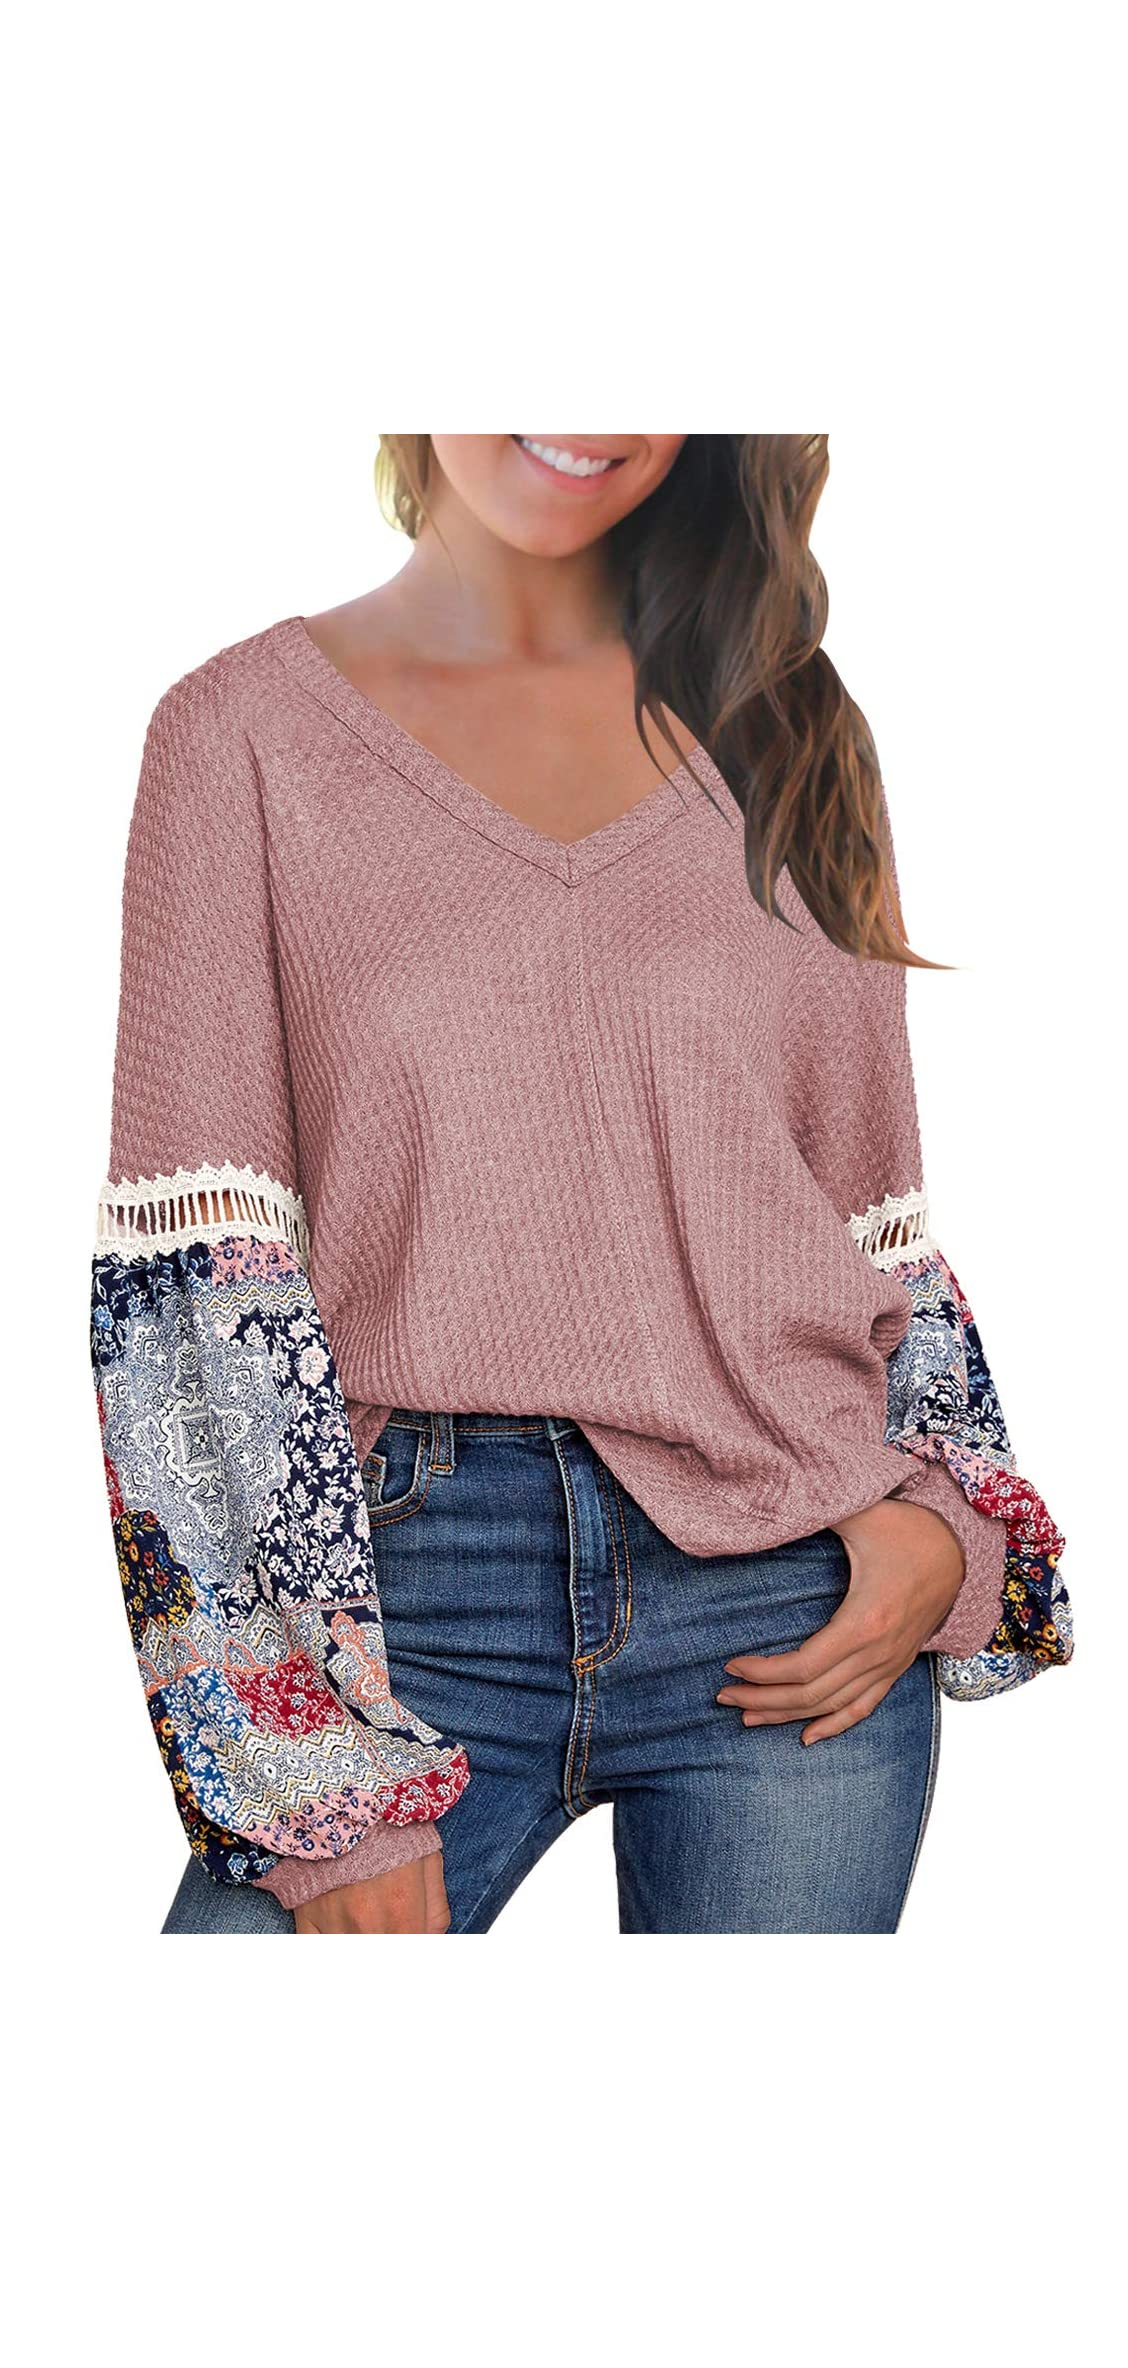 Women's Casual Tops Printed Long Sleeve V Neck T Shirts